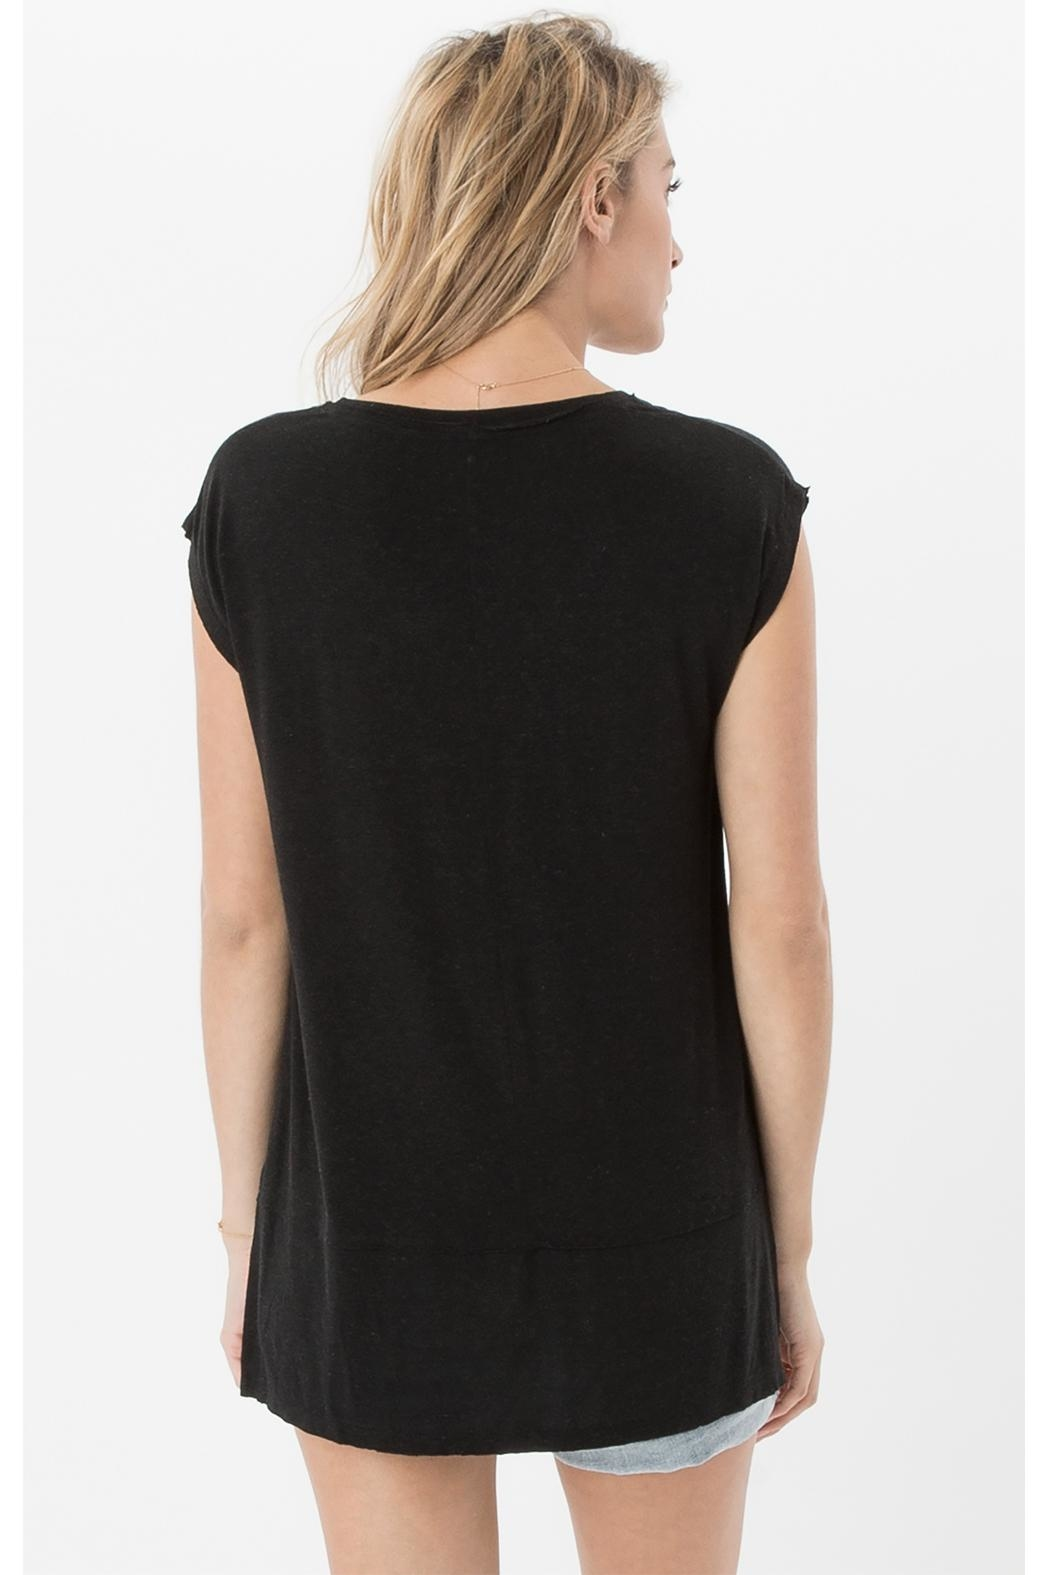 z supply Mia Linen Top - Back Cropped Image